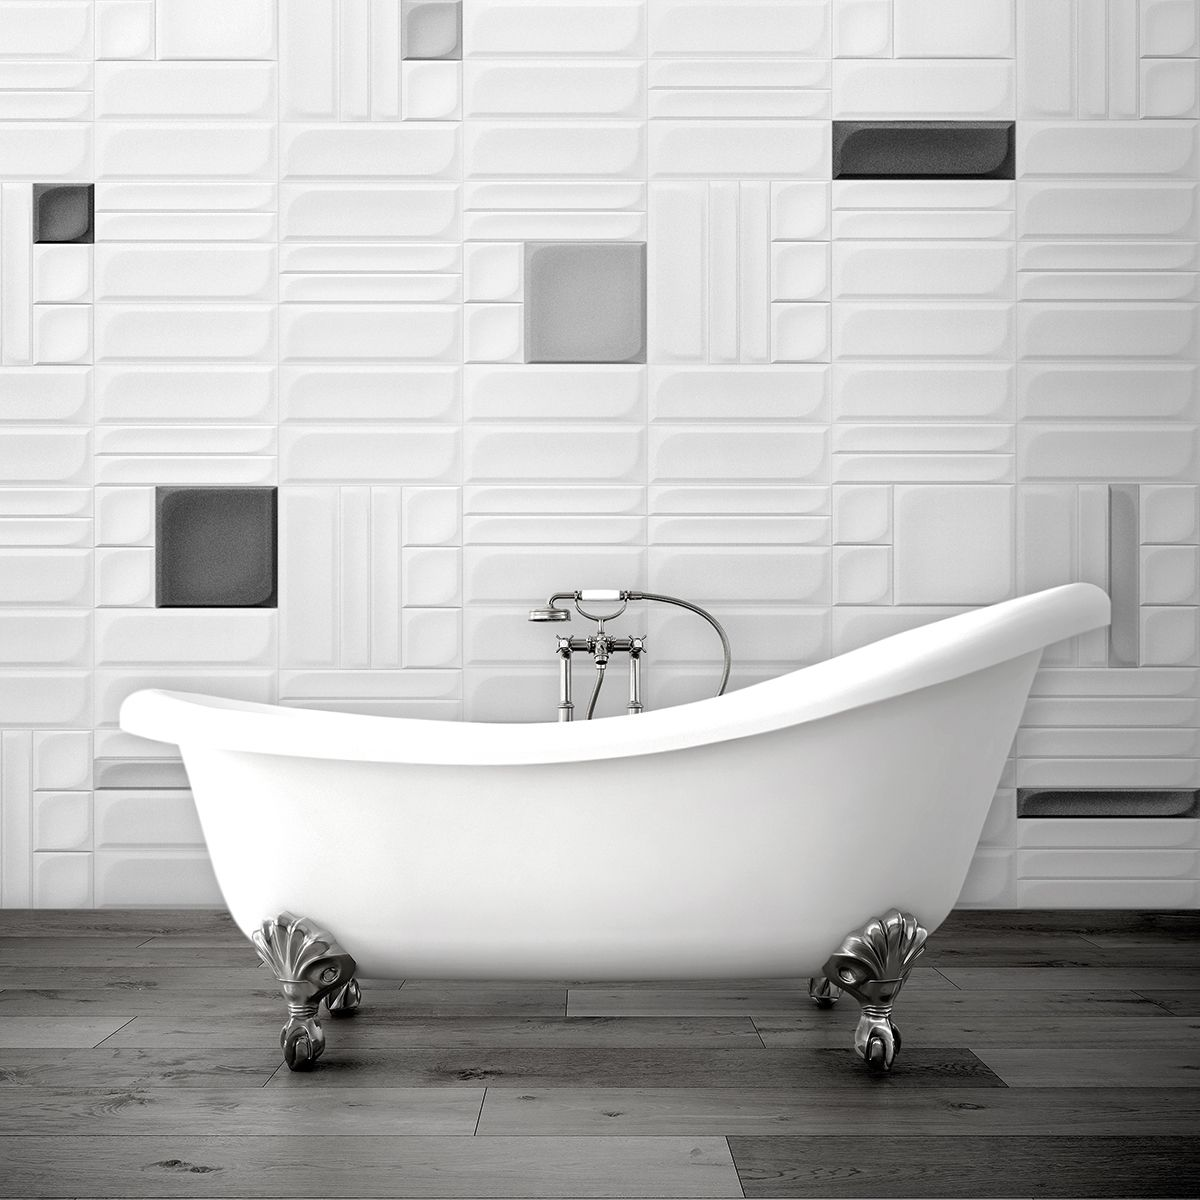 Funky bathroom wall tiles from Solus Ceramics\' Elegance range. Mix ...